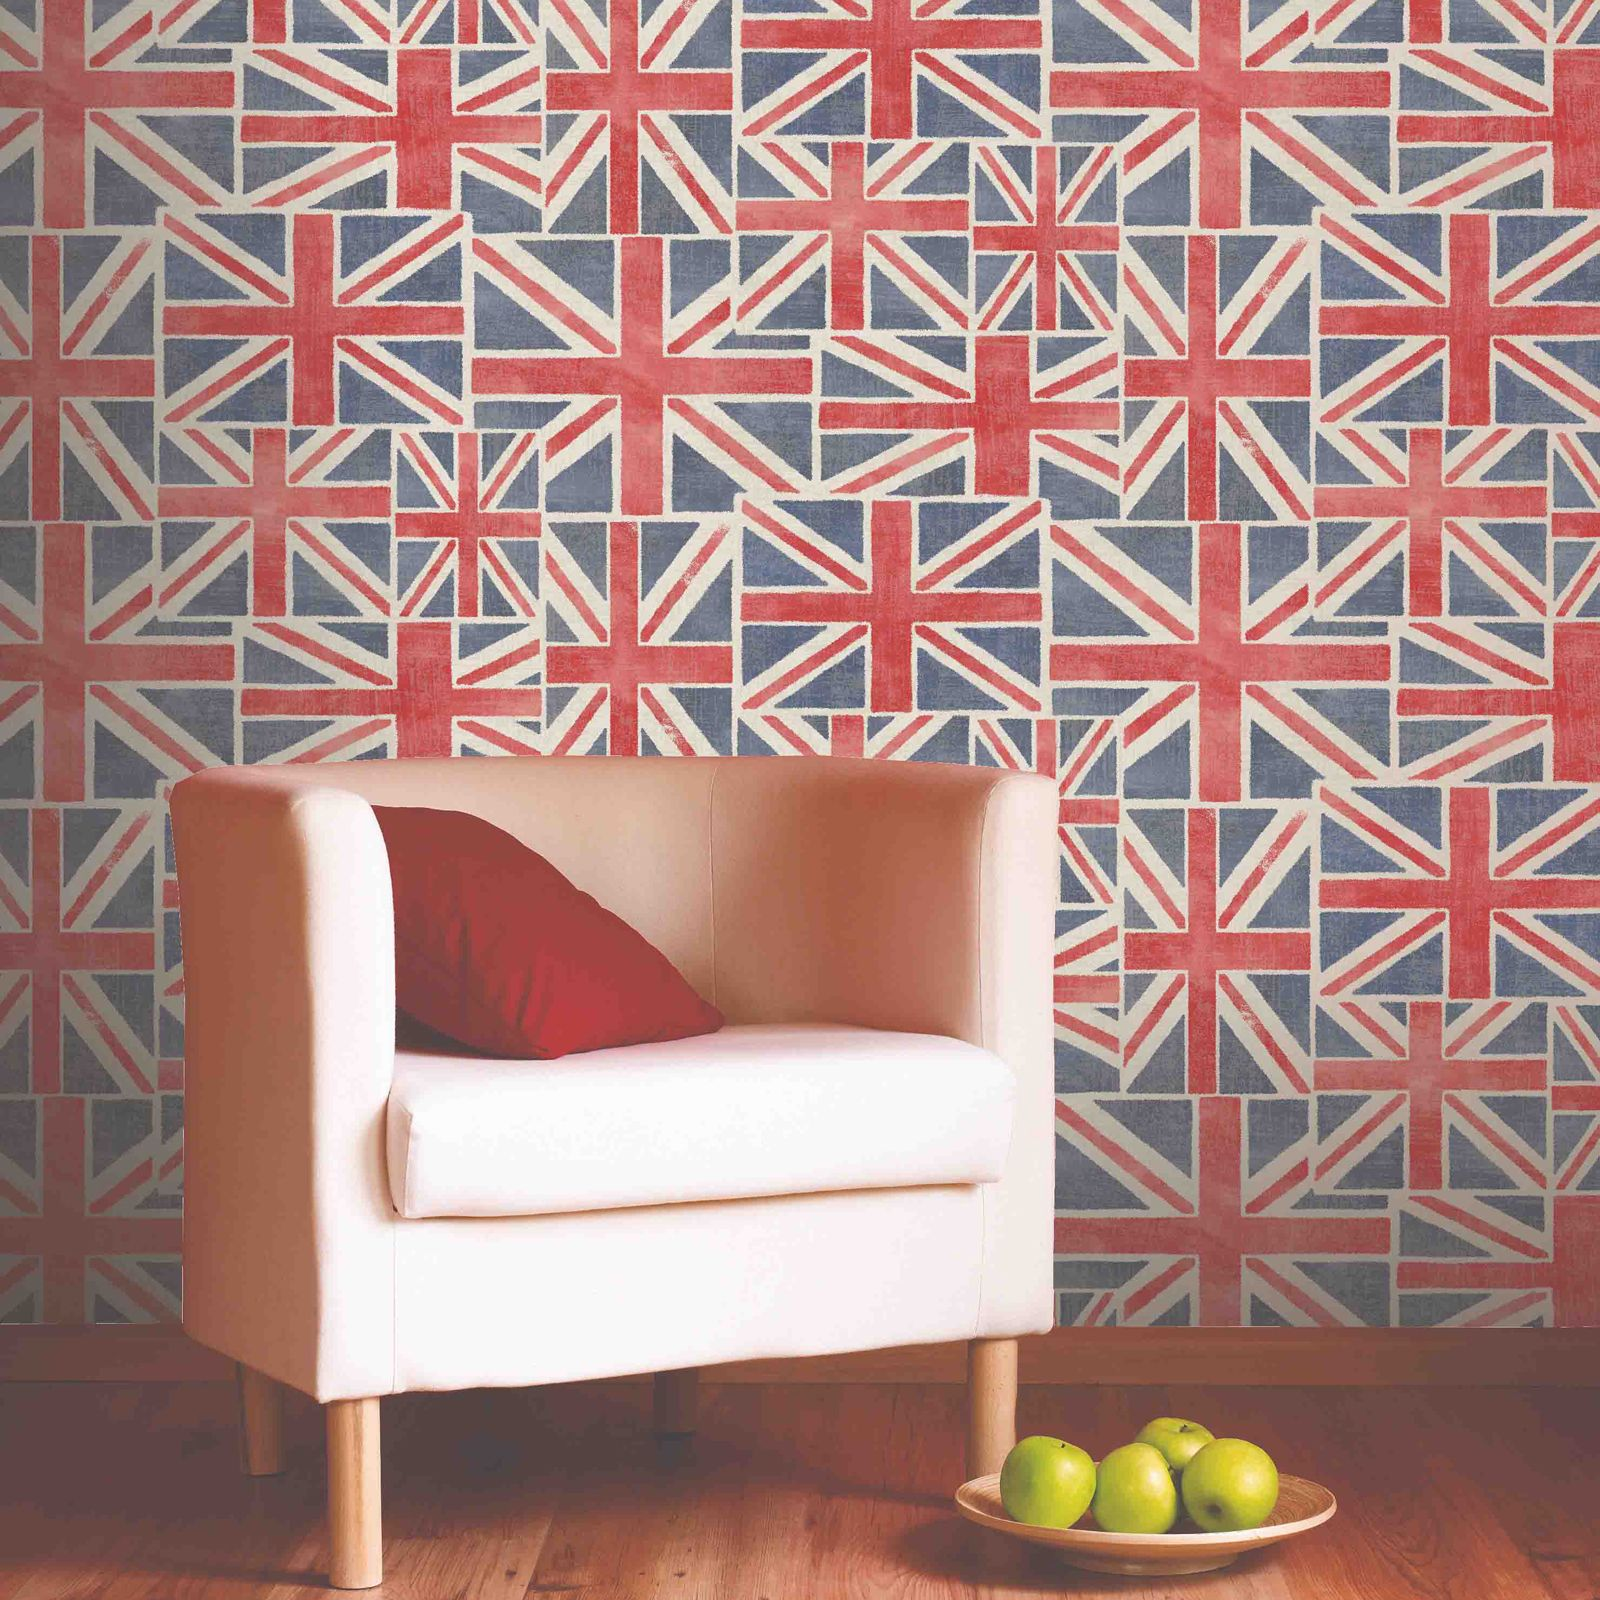 Union Jack Wallpaper 10m New Feature Wall British Flag Sealed Ebay